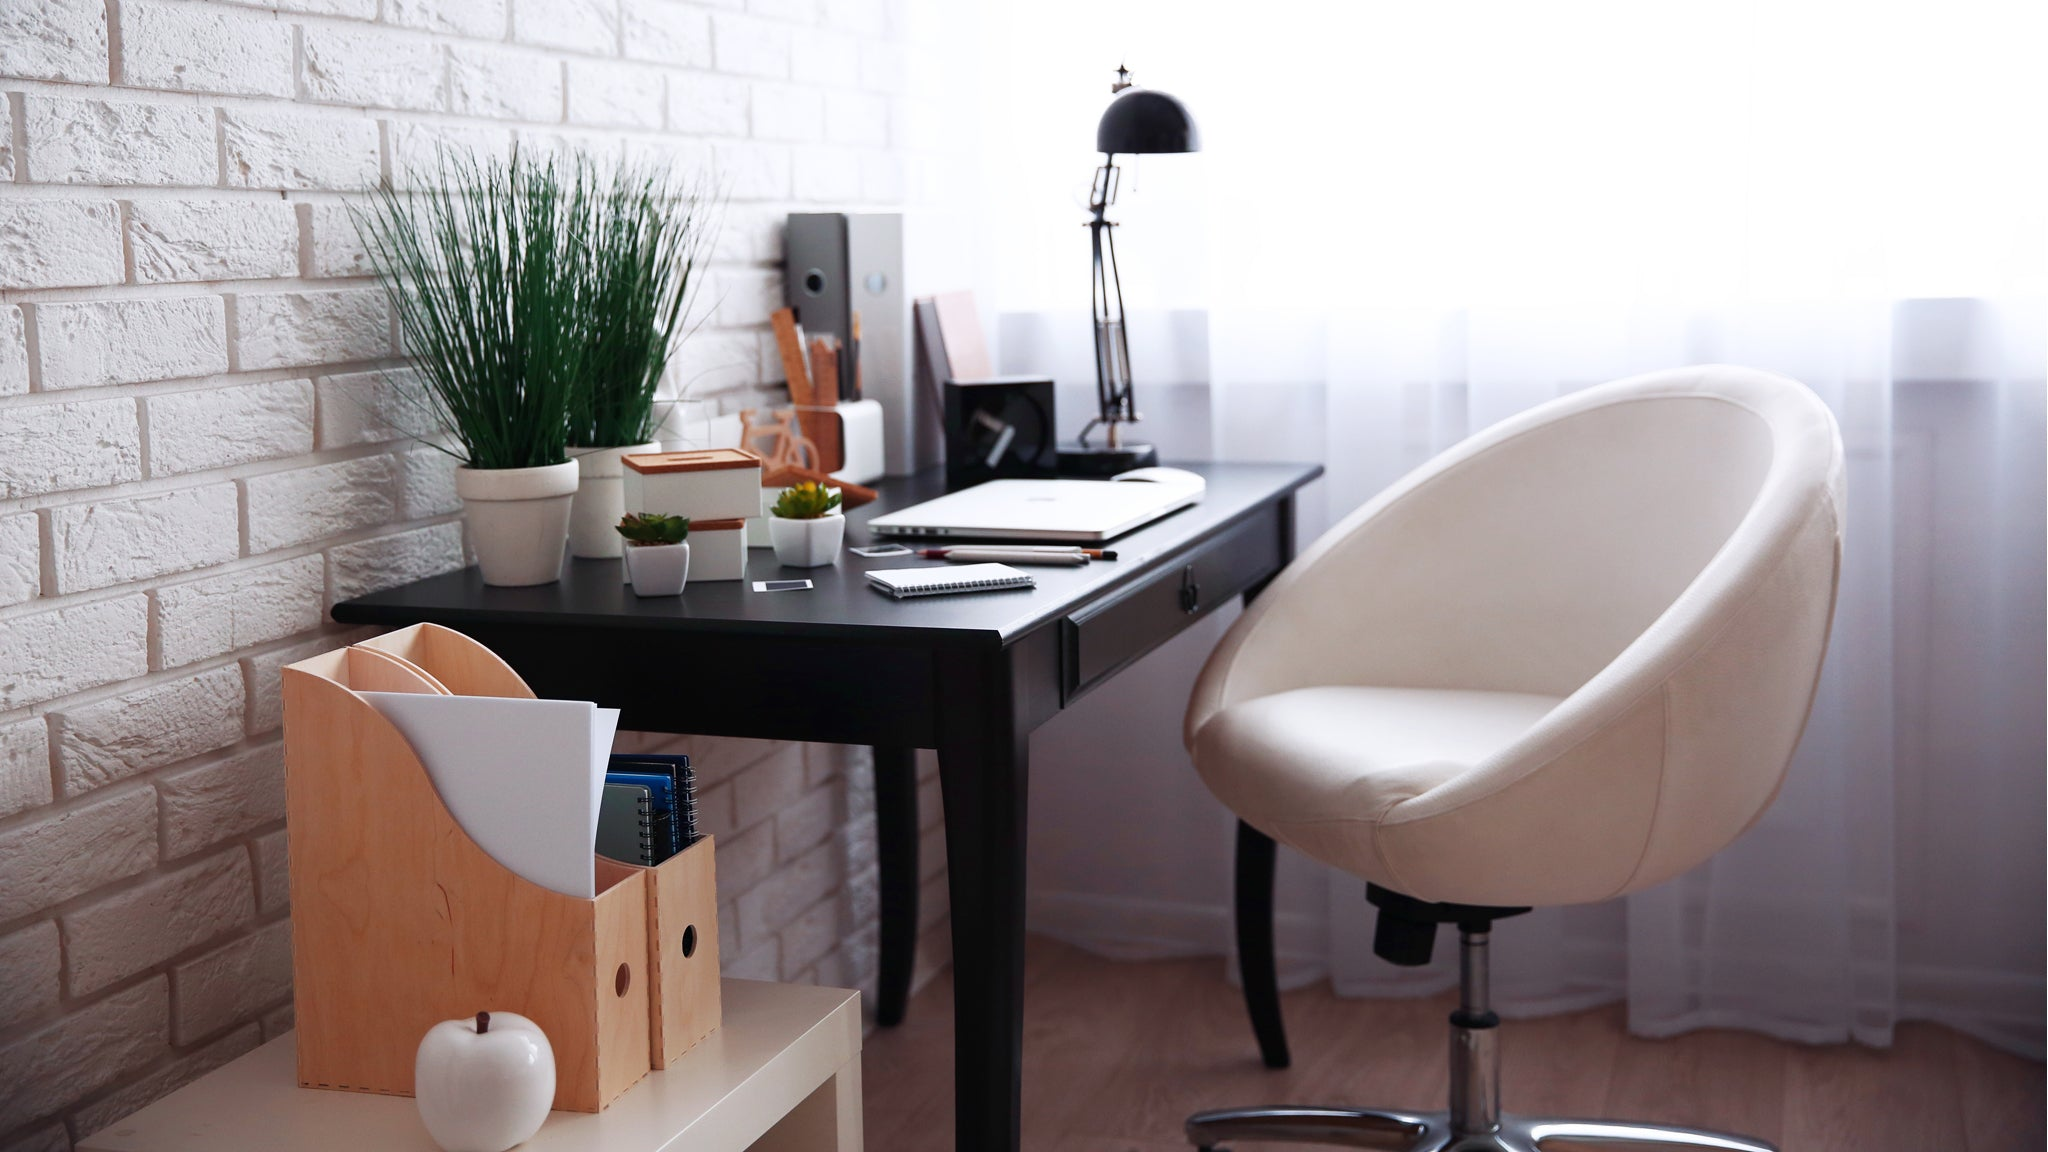 Tips for creating a functional home office for business owners and remote workers